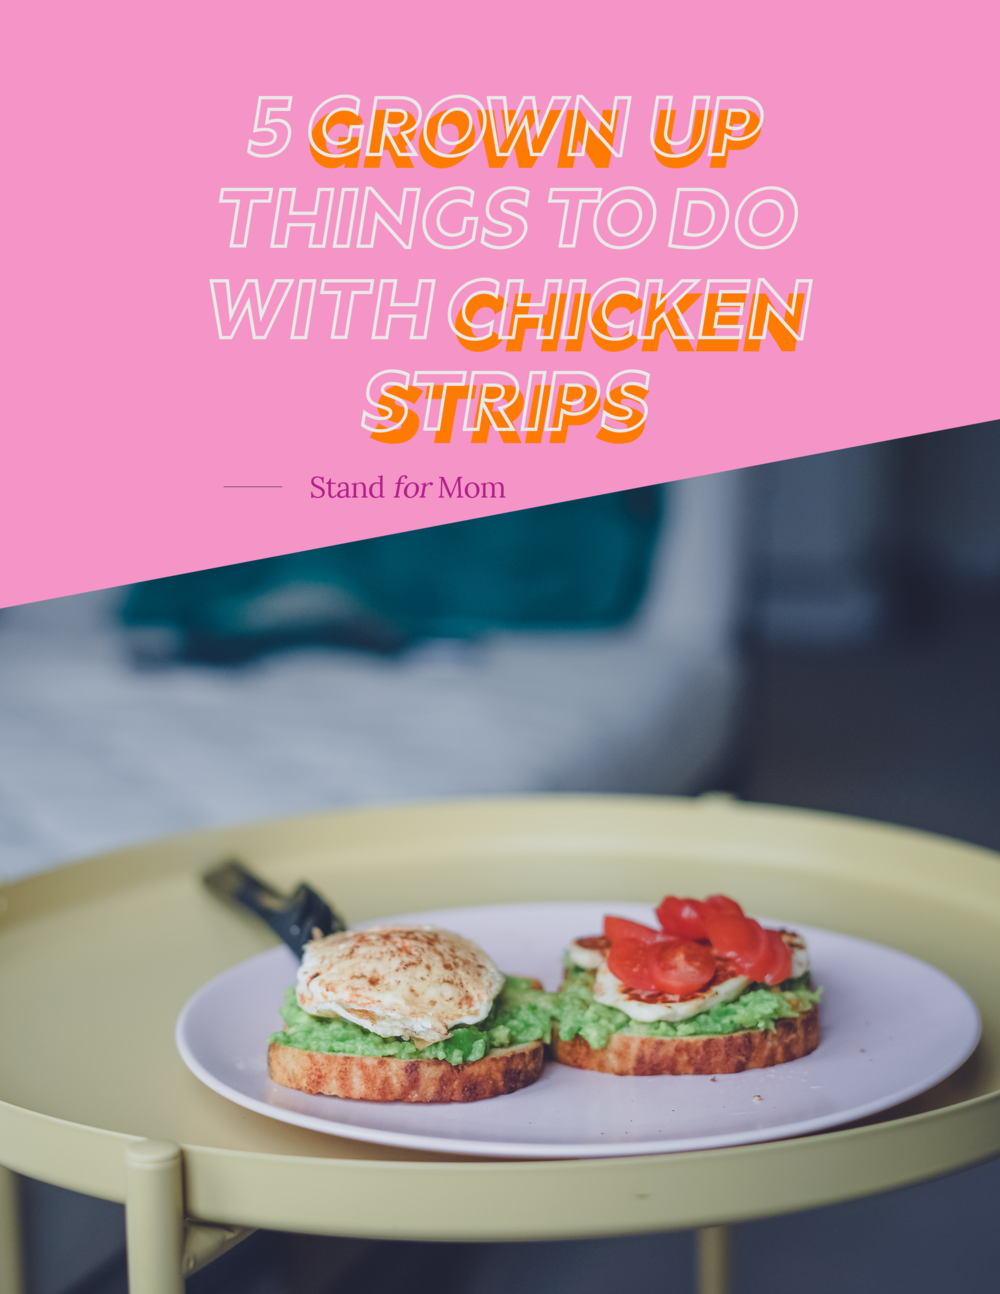 5 Grown Up Things to Do With Chicken Strips Cover.png